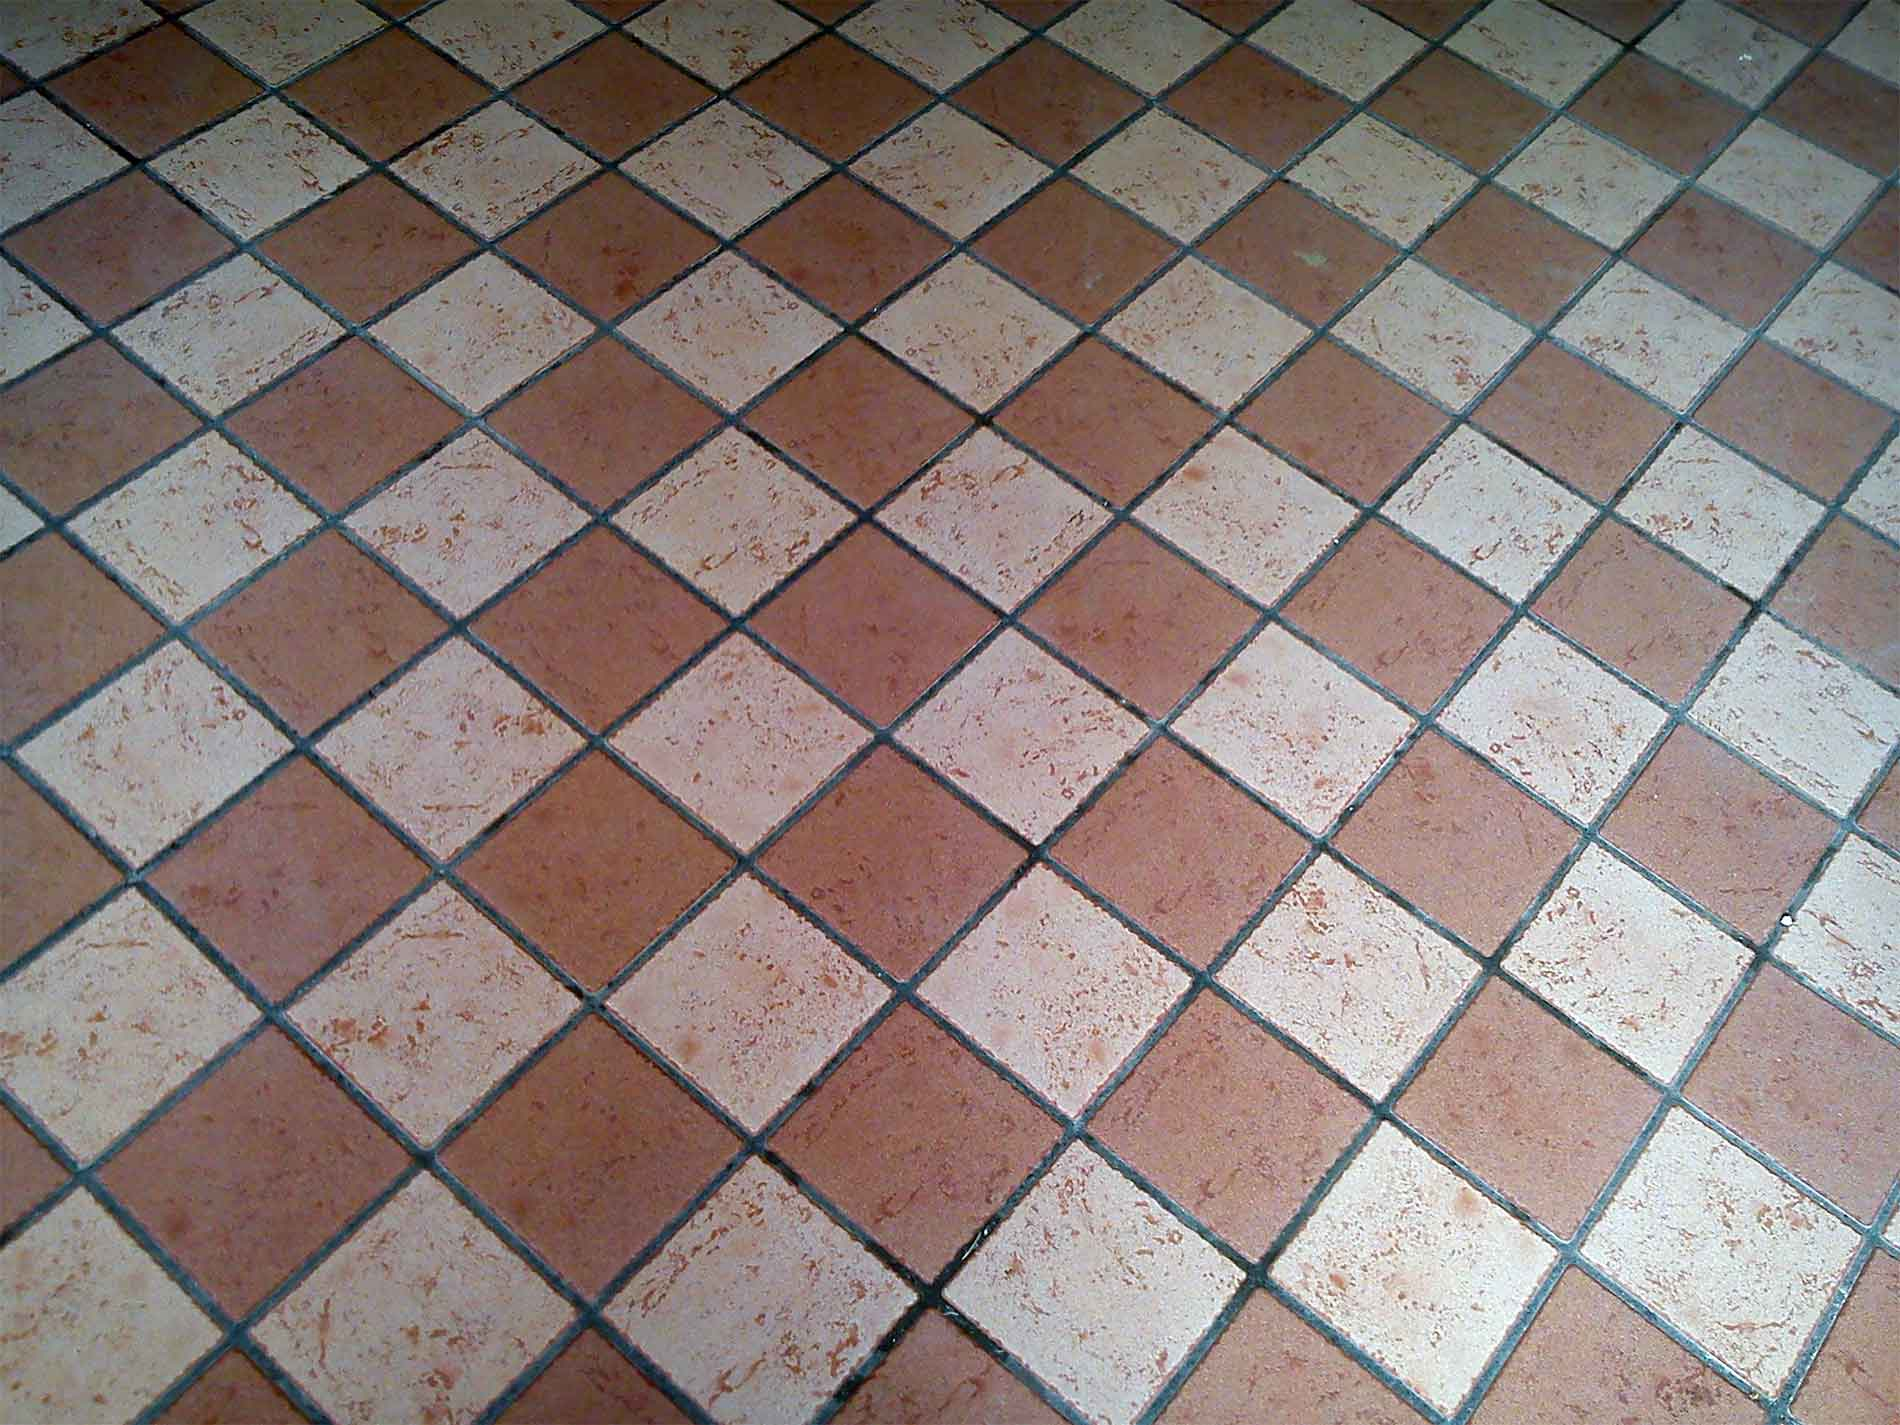 brown and white quarry tiles with grey grout